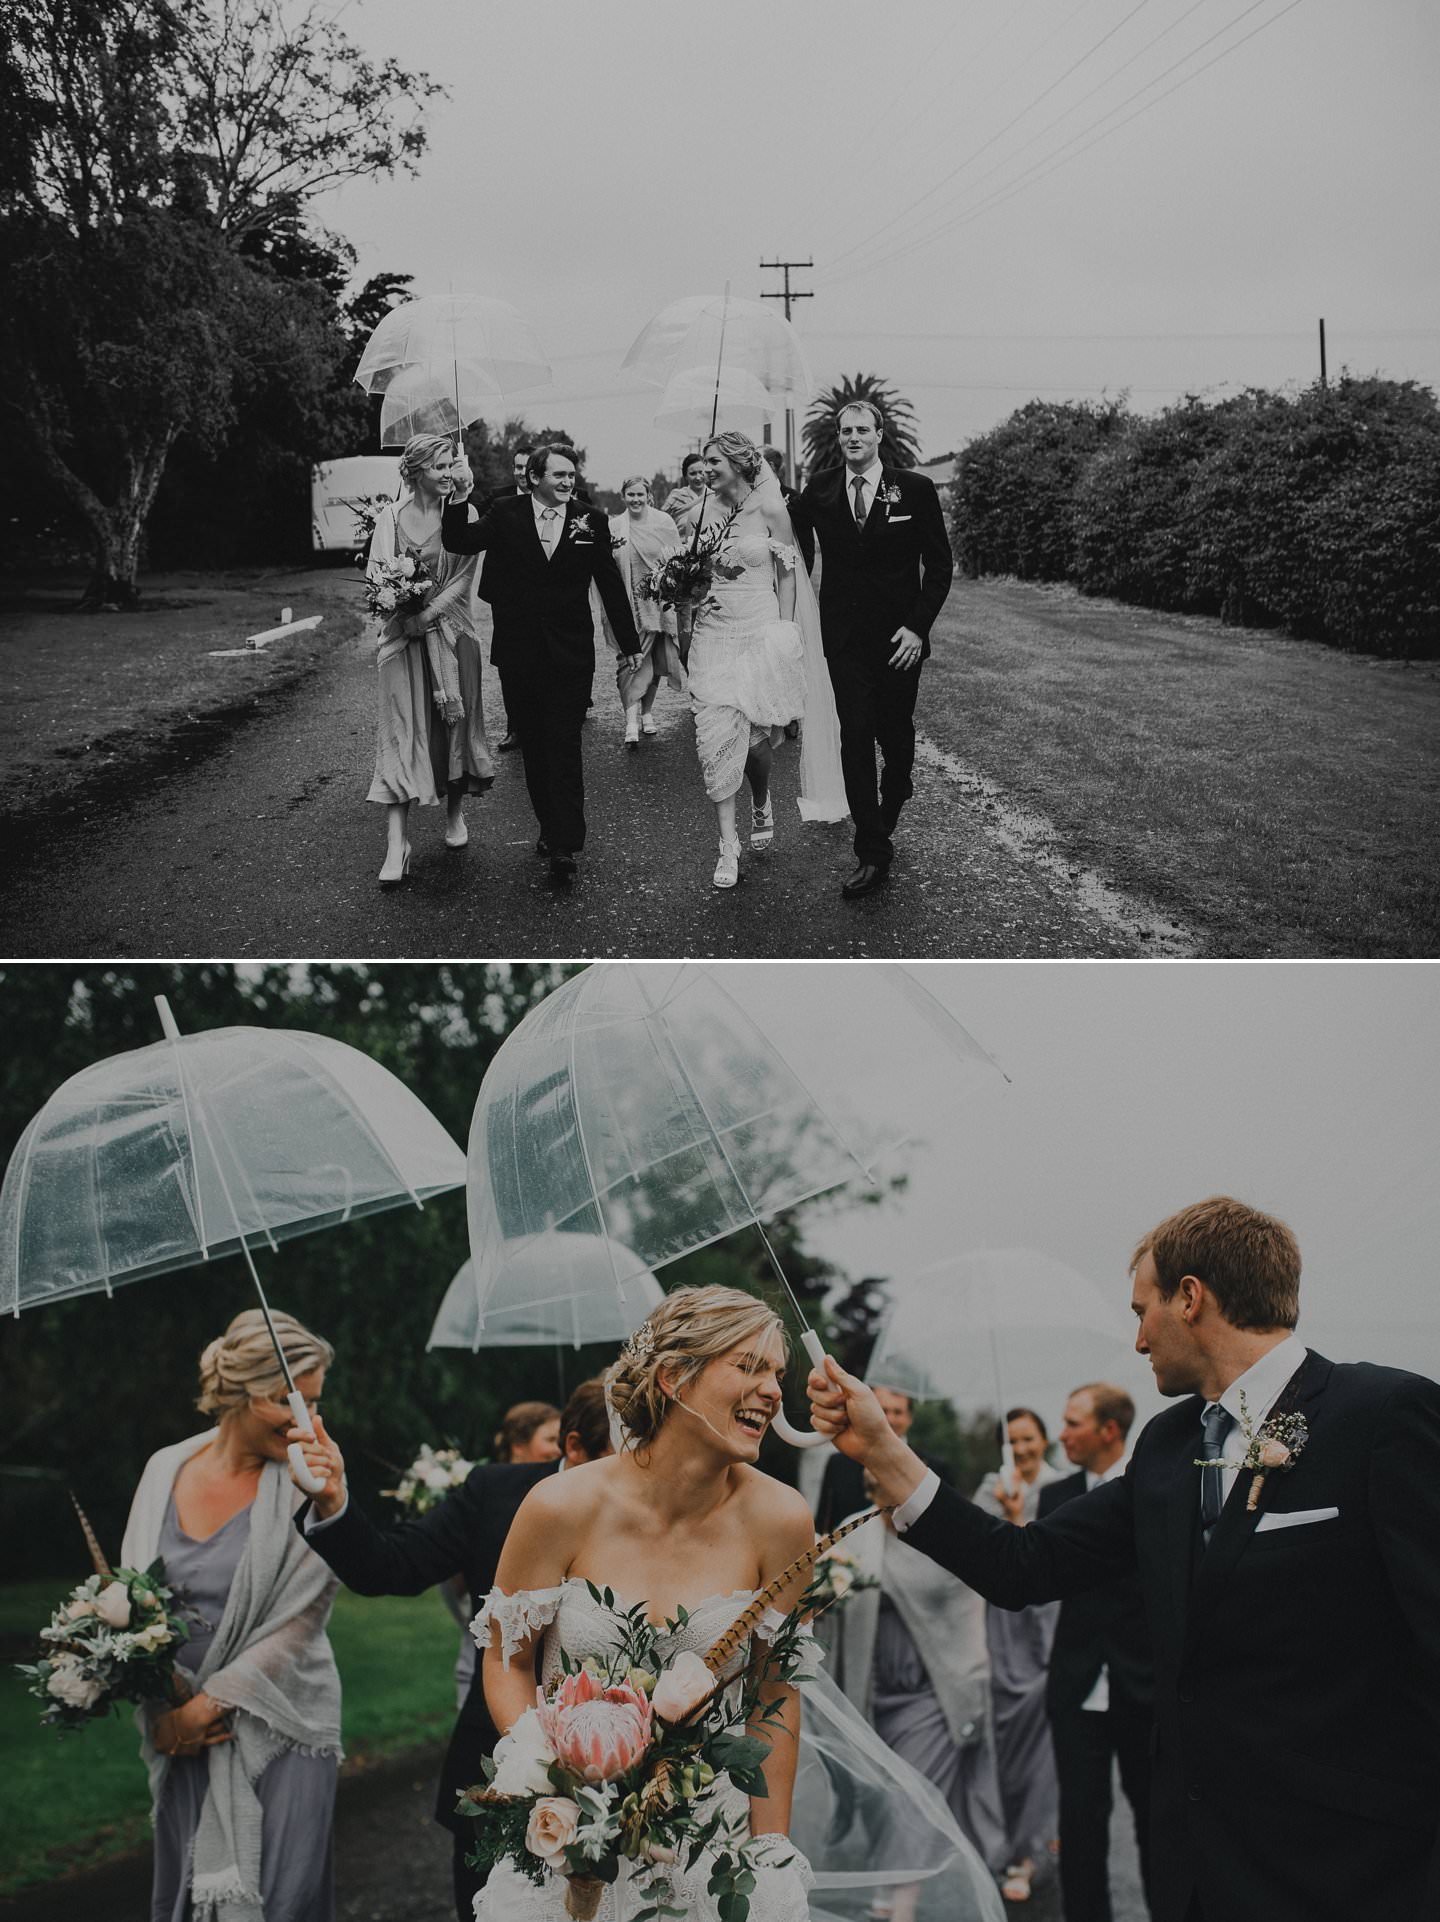 Bridal party walking in the rain with umbrellas and grey bridesmaid dresses